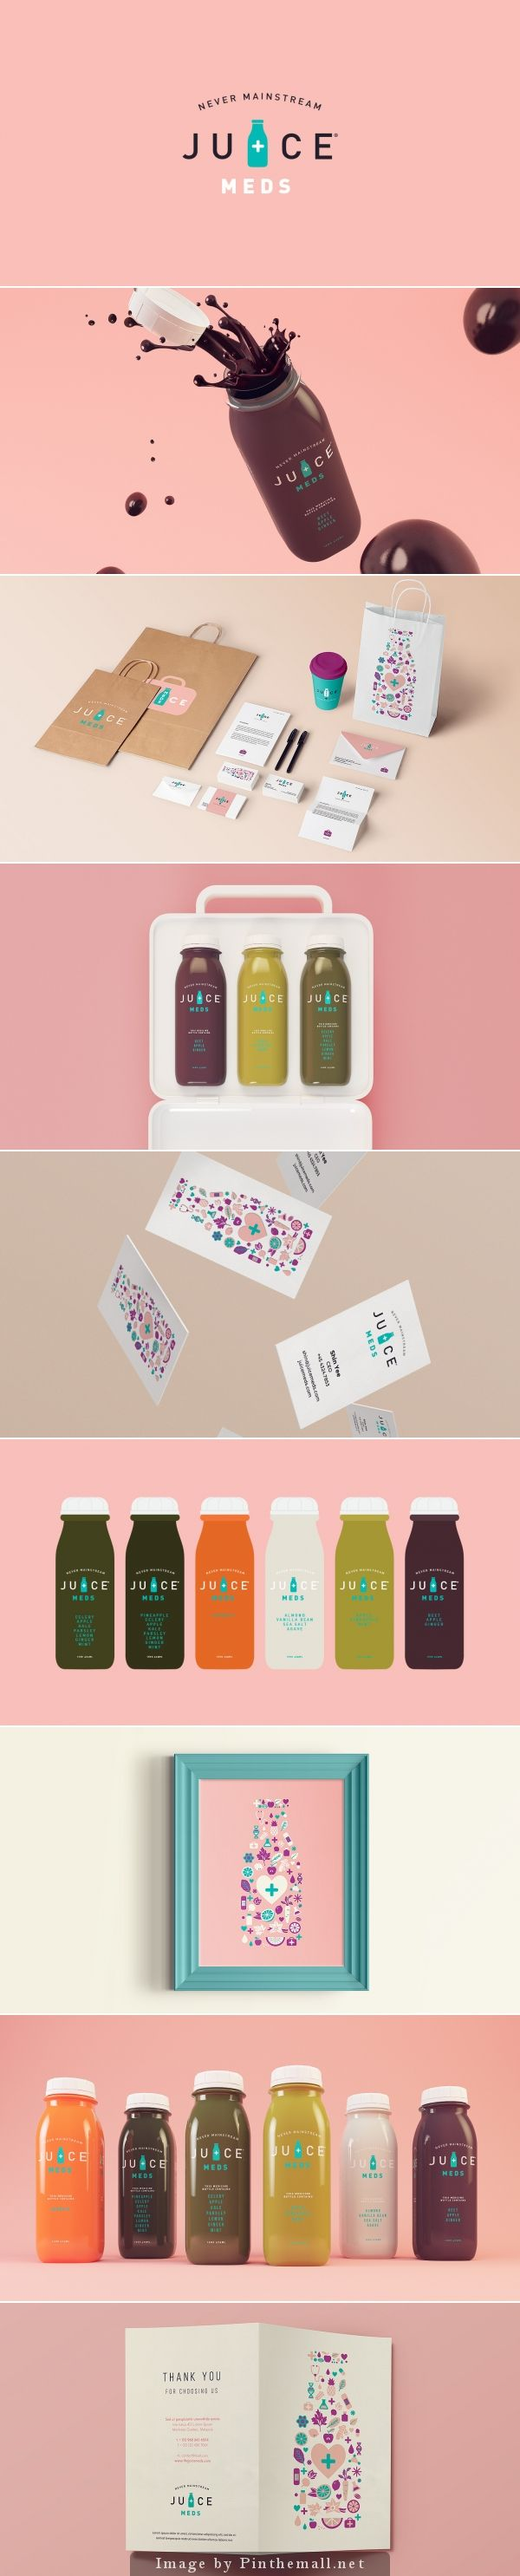 Juice Meds by Isabela Rodrigues